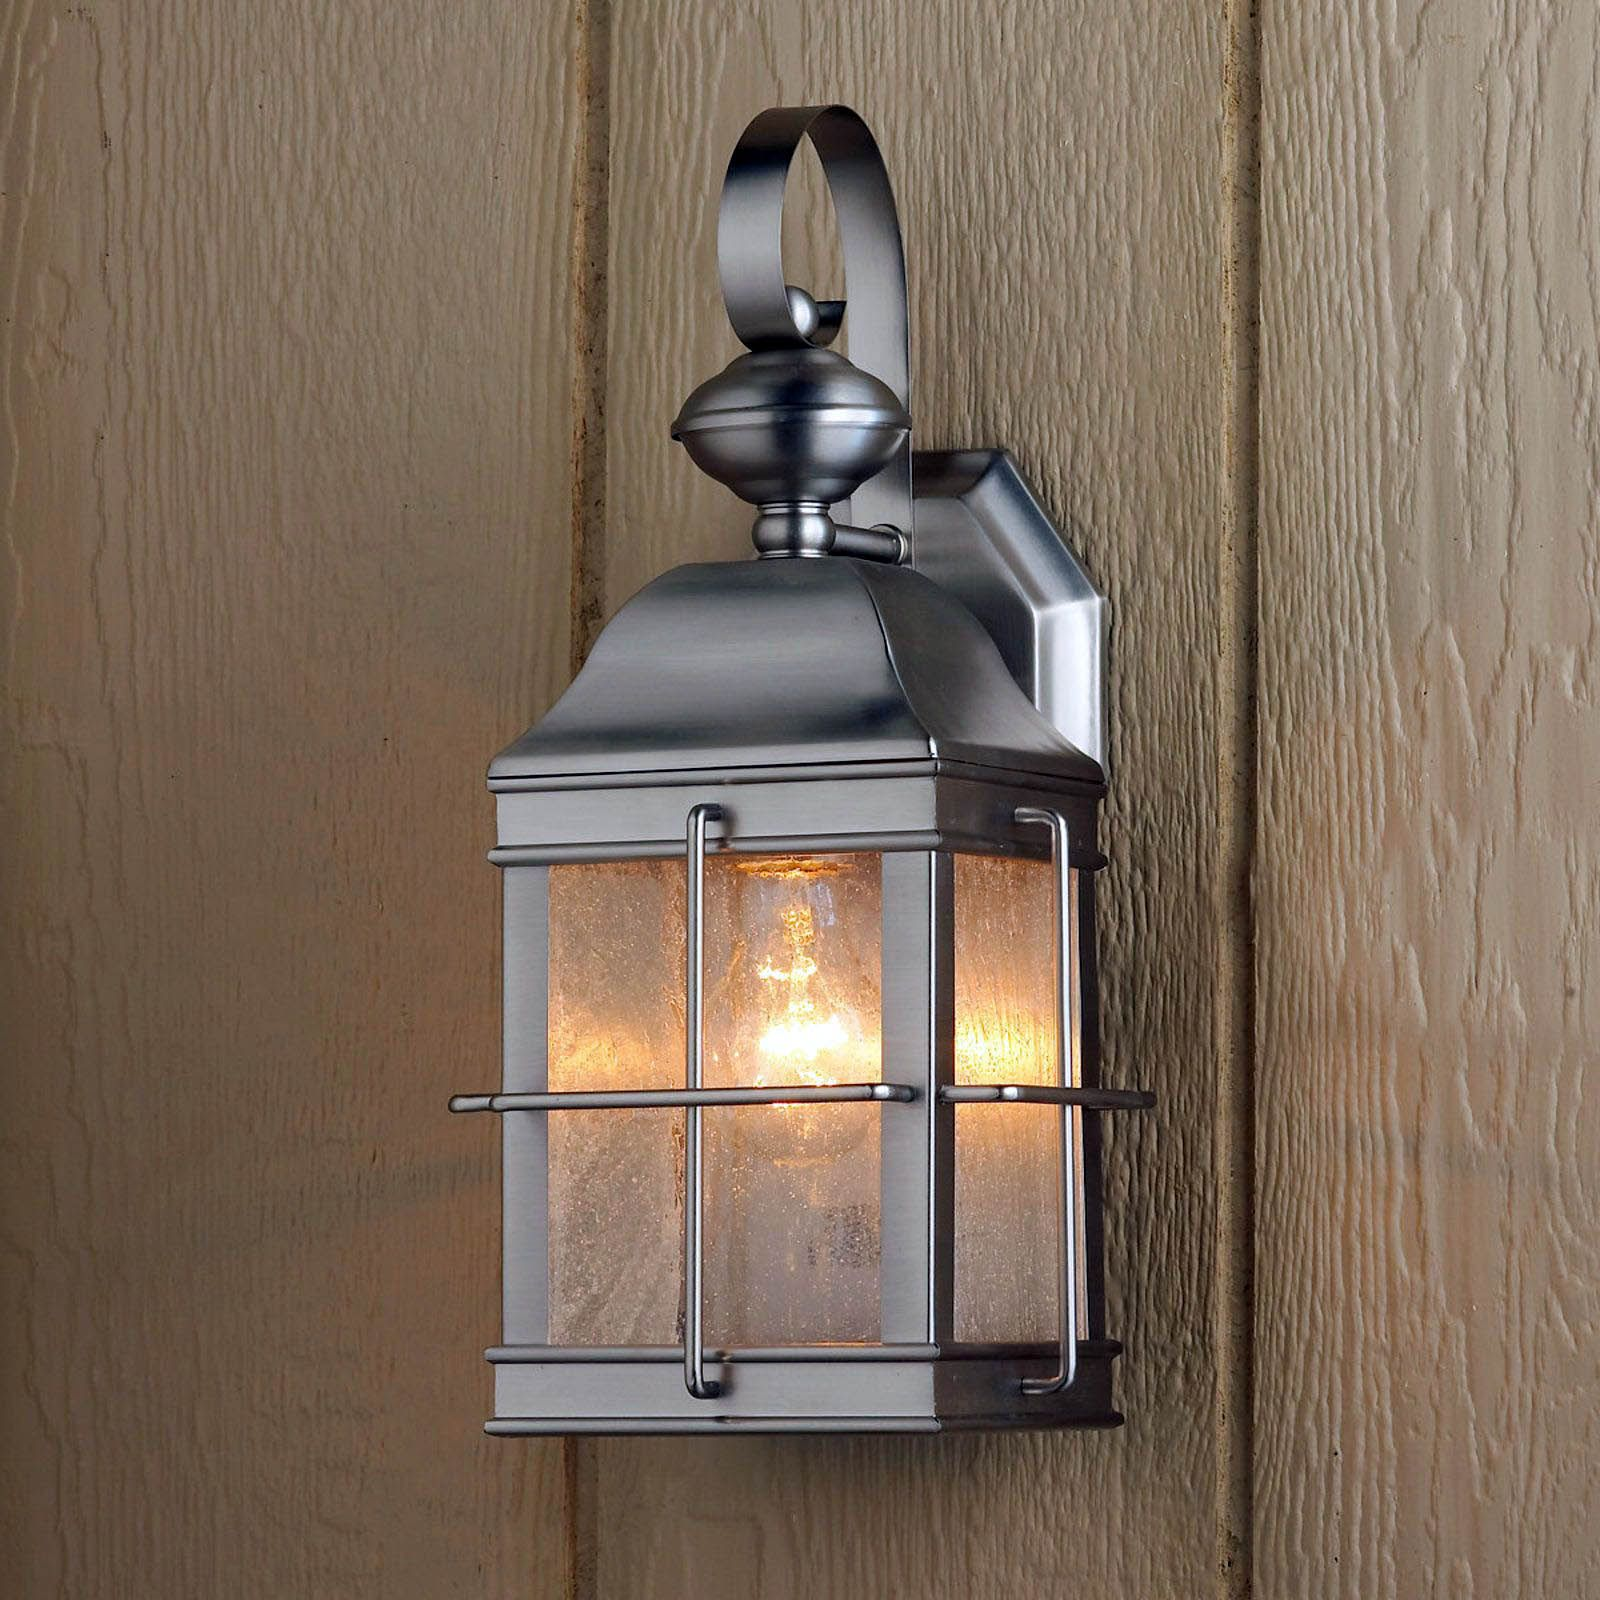 Fascinating Plug In Outdoor Light Fixtures Exclusive On Neuronhome